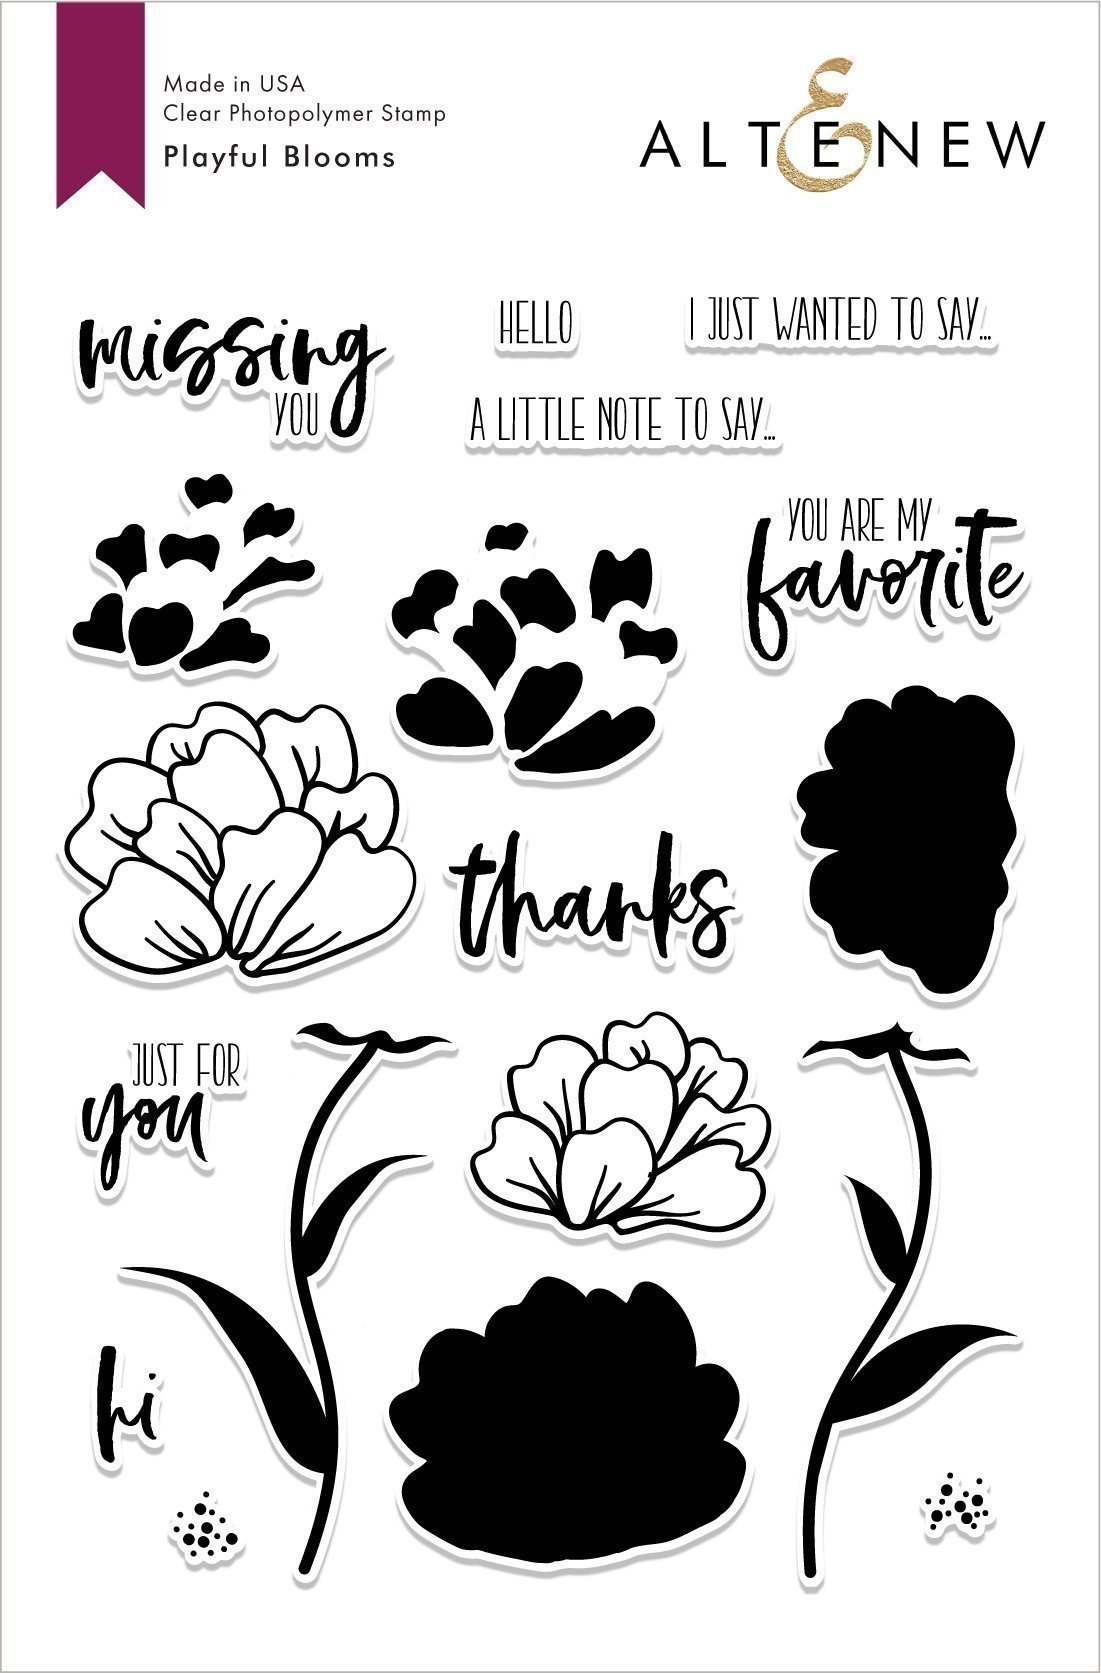 *NEW* - Altenew - Playful Blooms Stamp Set